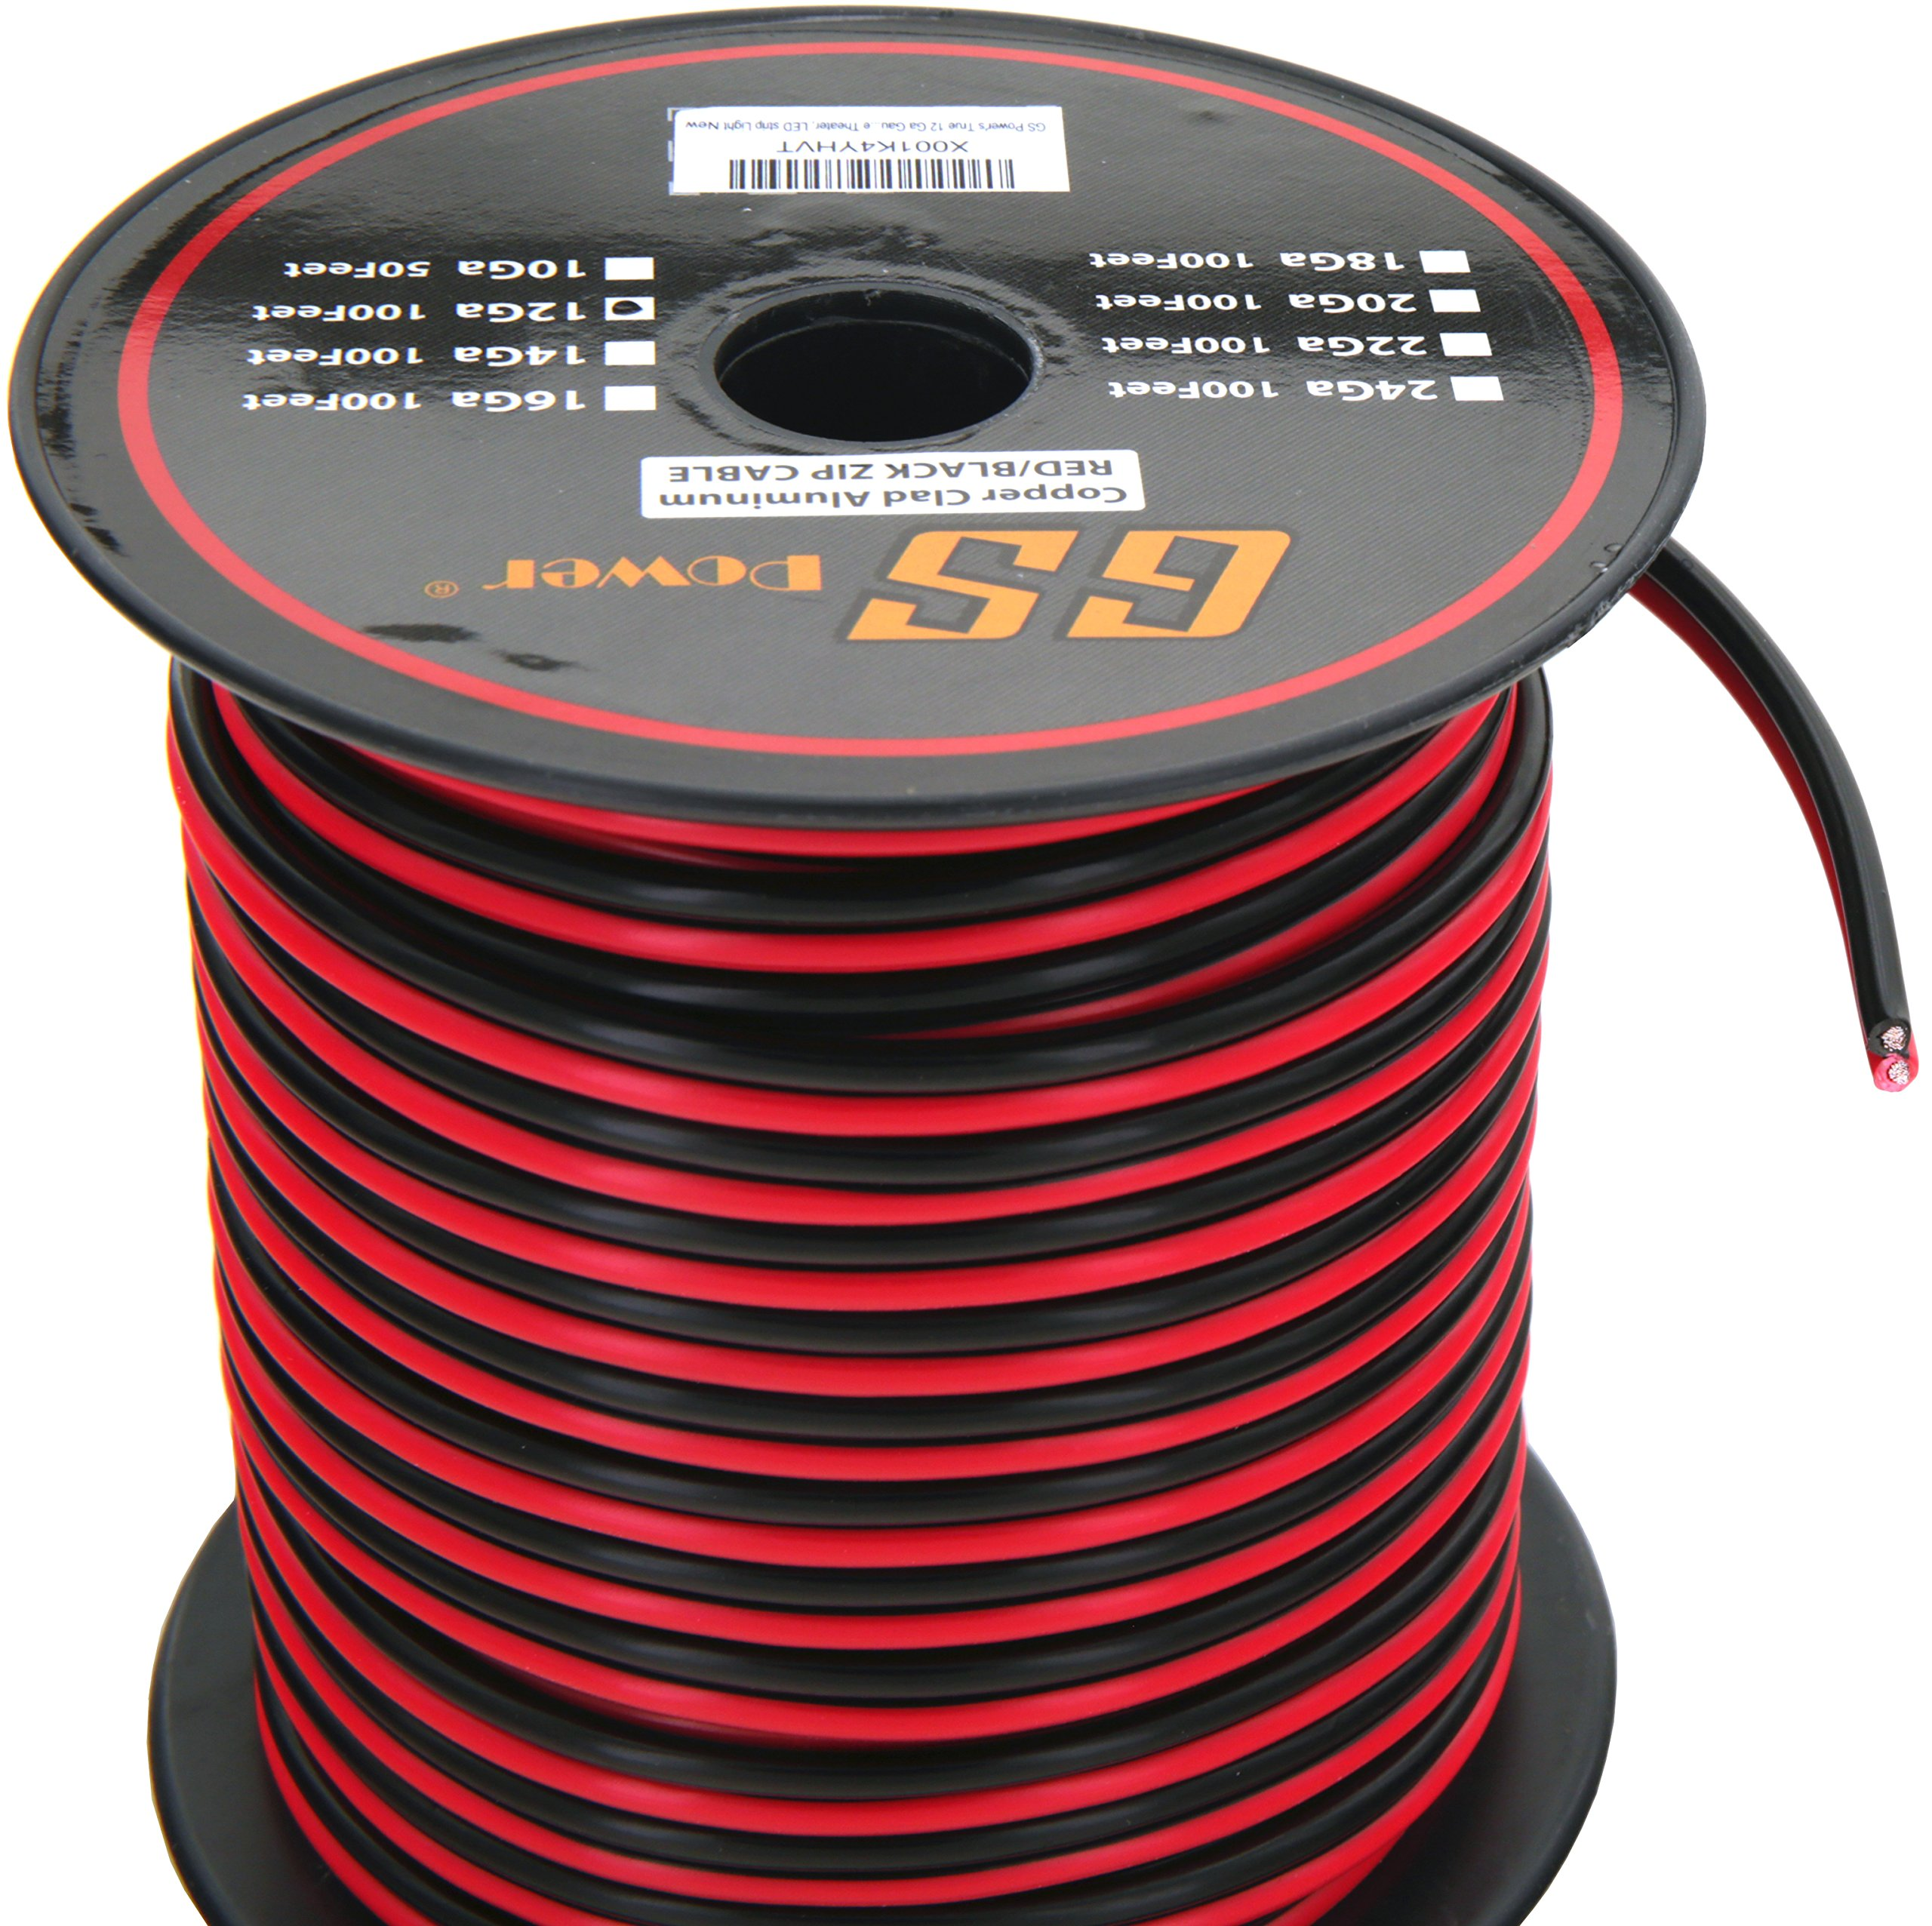 GS Power 12 Ga Gauge 100 Feet CCA Copper Clad Aluminum Red/Black 2 Conductor Bonded Zip Cord Speaker Cable for Car Audio, Home Theater, LED Light, Model Train, Amplifier, Trailer Harness Wiring by GS Power